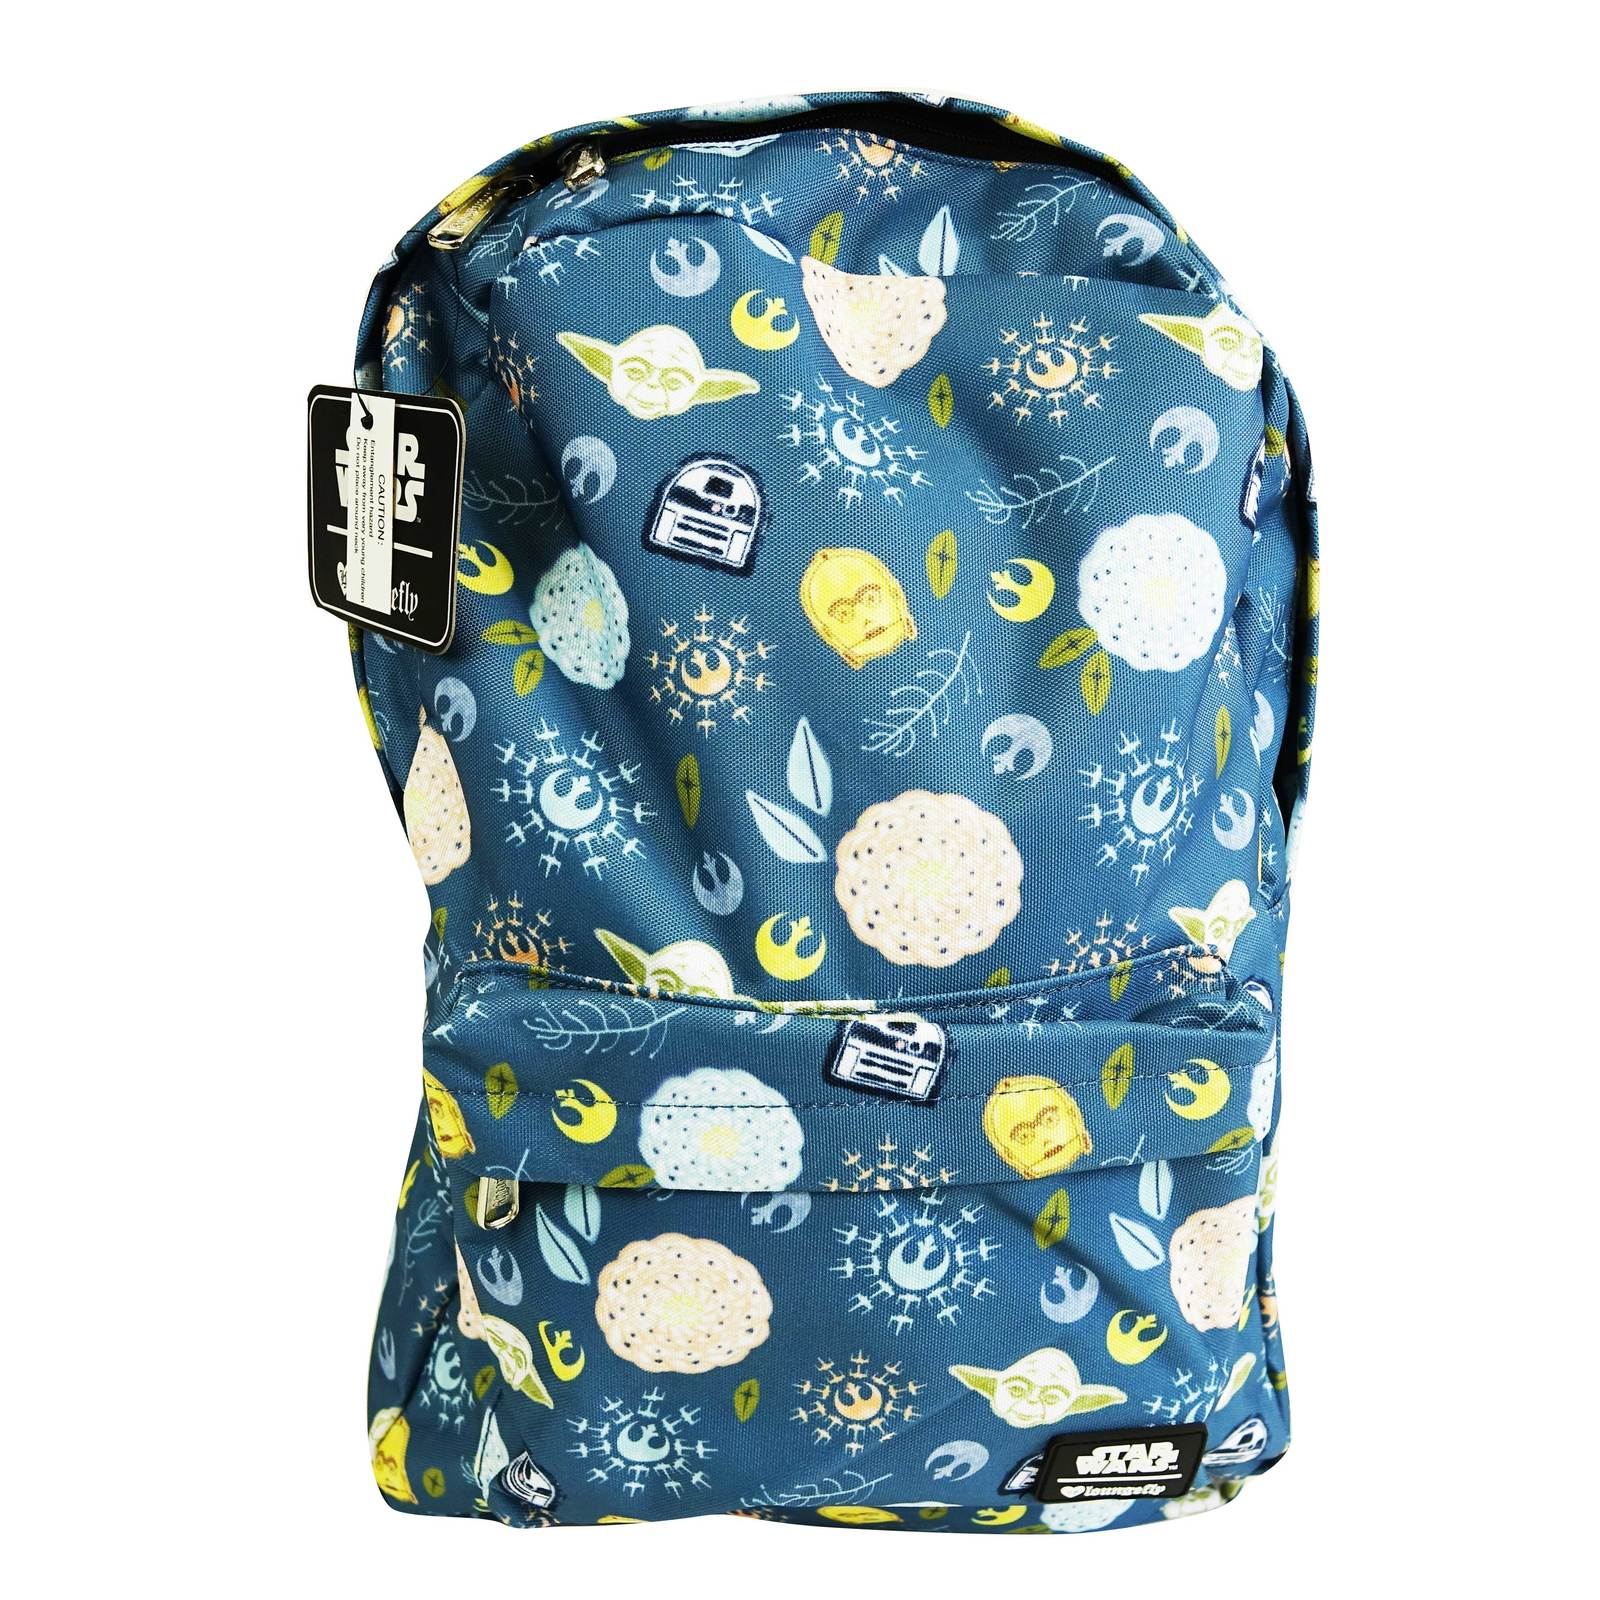 Loungefly Star Wars Galaxy AOP Backpack image